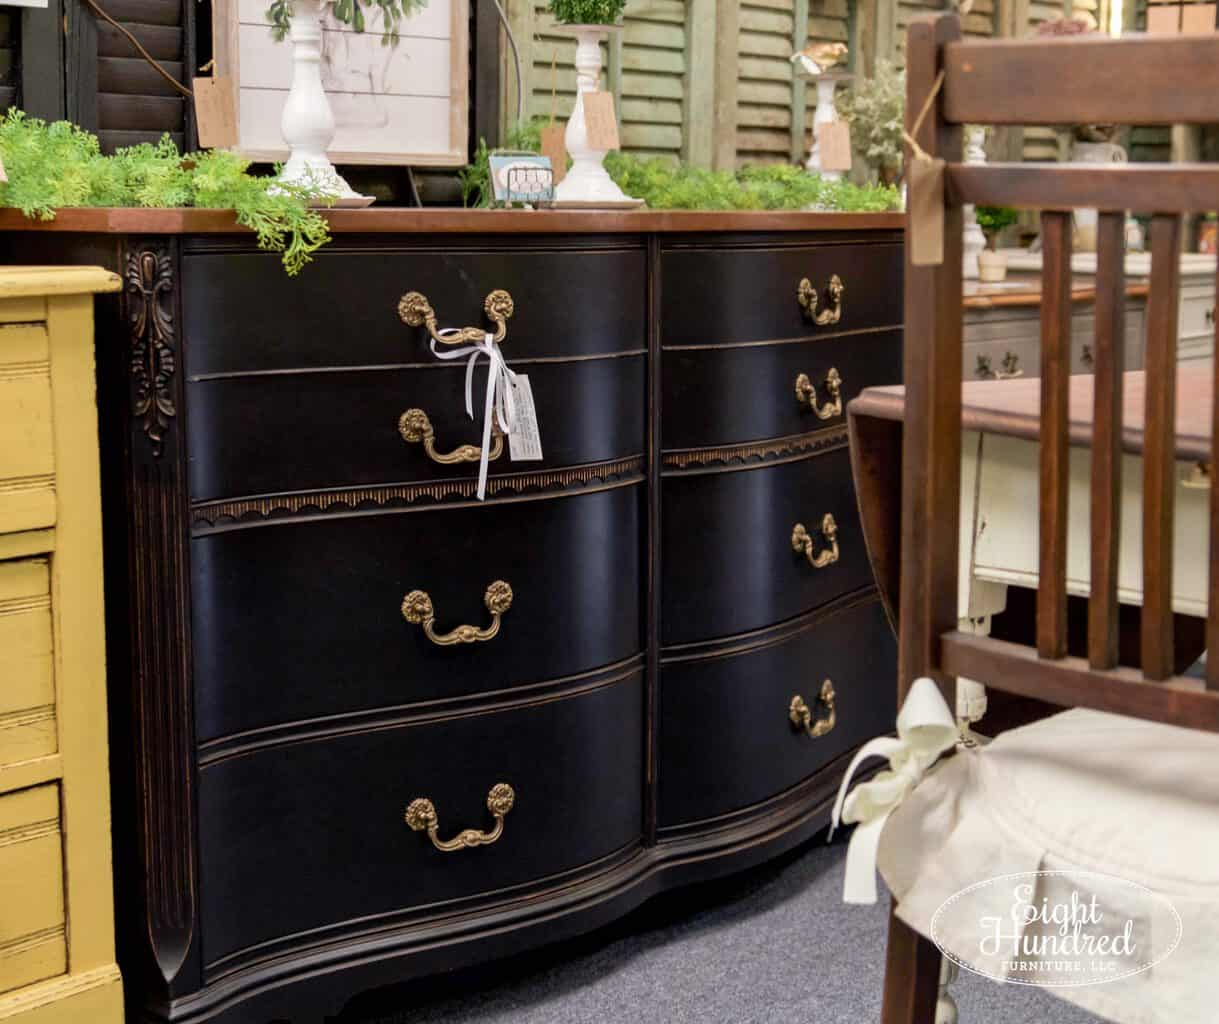 general finishes, lamp black, high performance topcoat, nutmeg gel stain, gel stain, buffet, morgantown market, morgantown pa, antique co-op, antique shop, eight hundred furniture